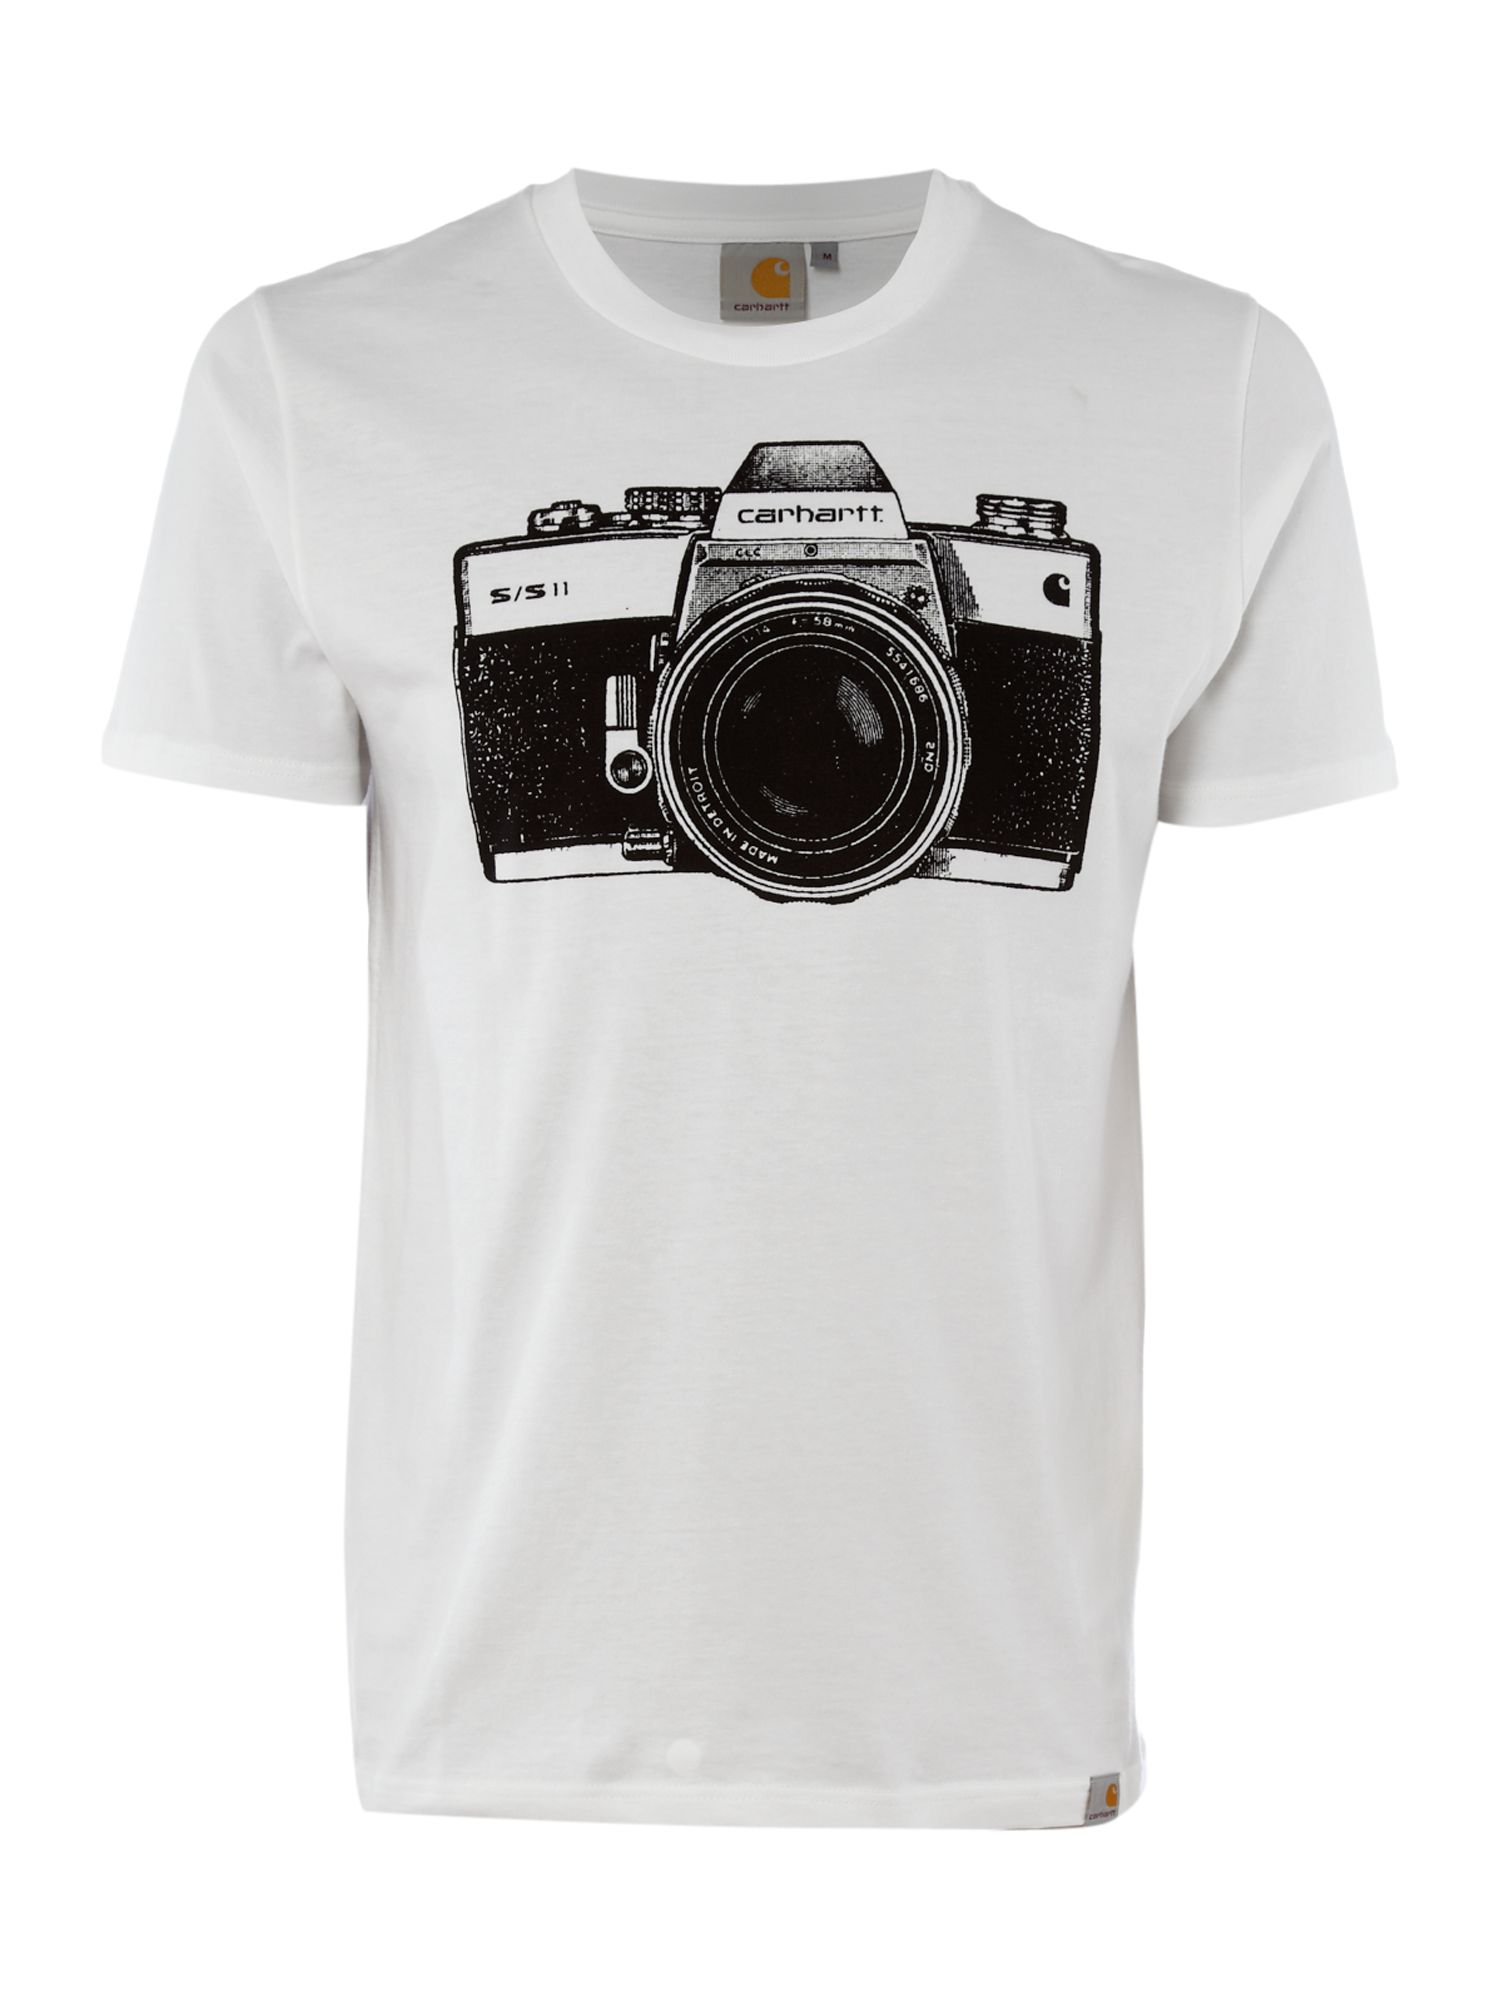 Carhartt Camera t-shirt - White S,S product image